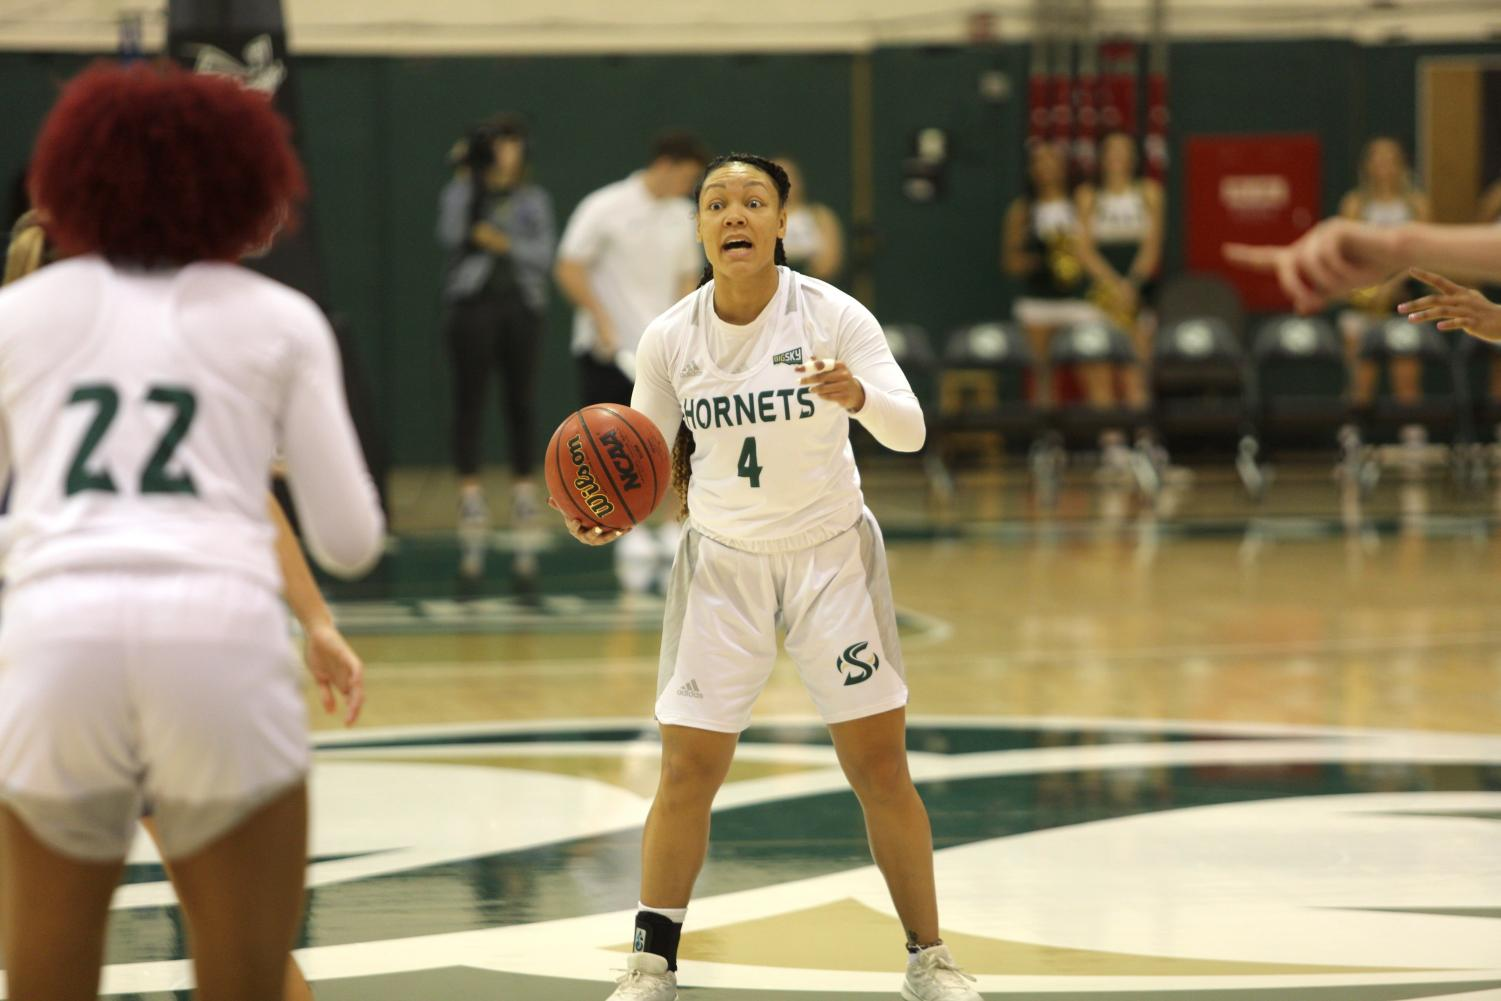 Sac State senior guard Camariah King calls out a play against Montana State on Saturday, Dec. 28 at the Nest. The Hornets were defeated by the Bobcats 85-48.